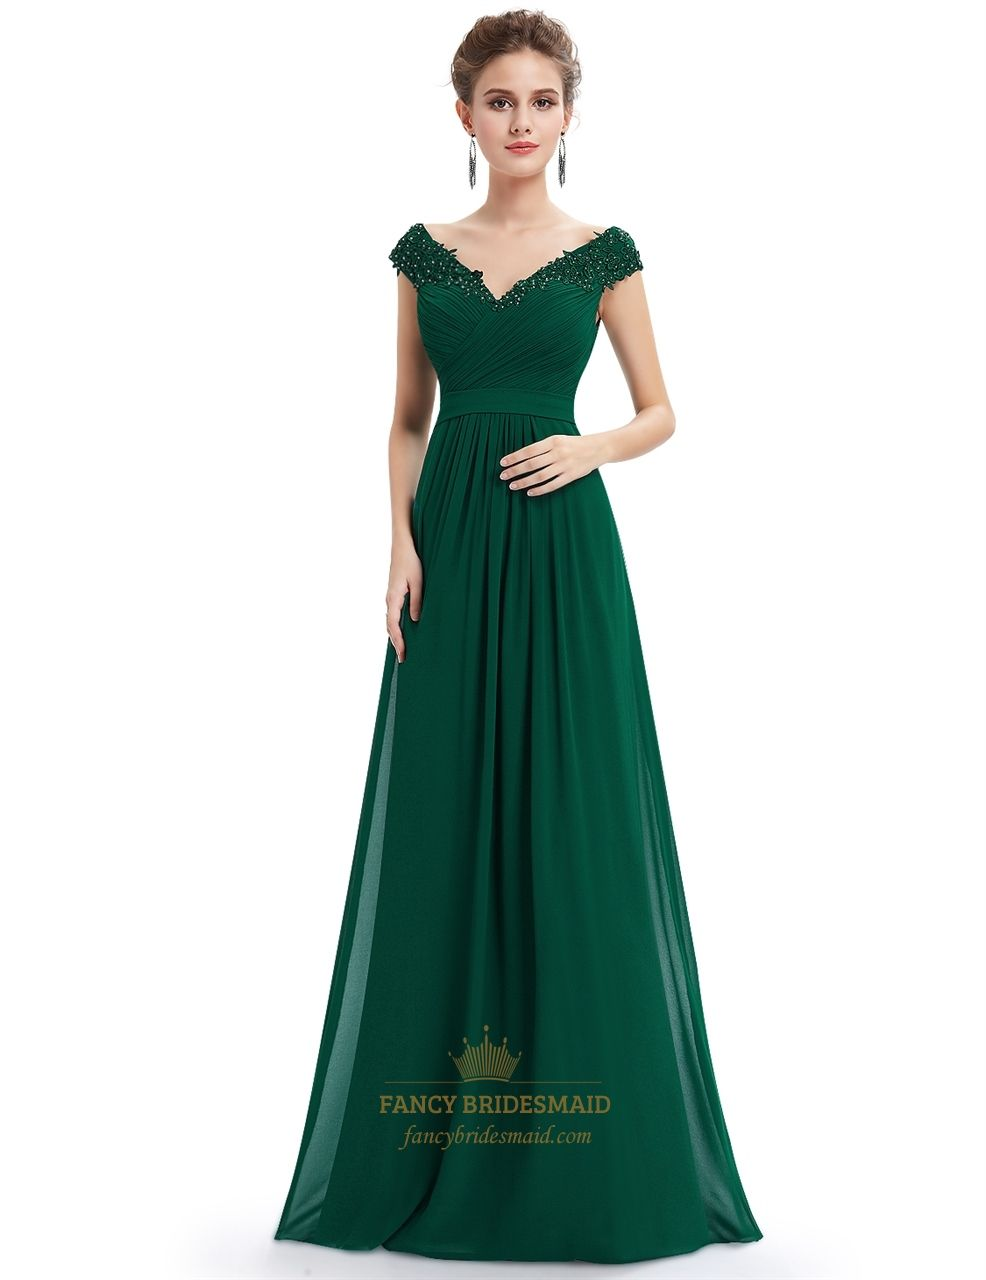 Emerald green v neck bridesmaid dresses with beaded lace applique in